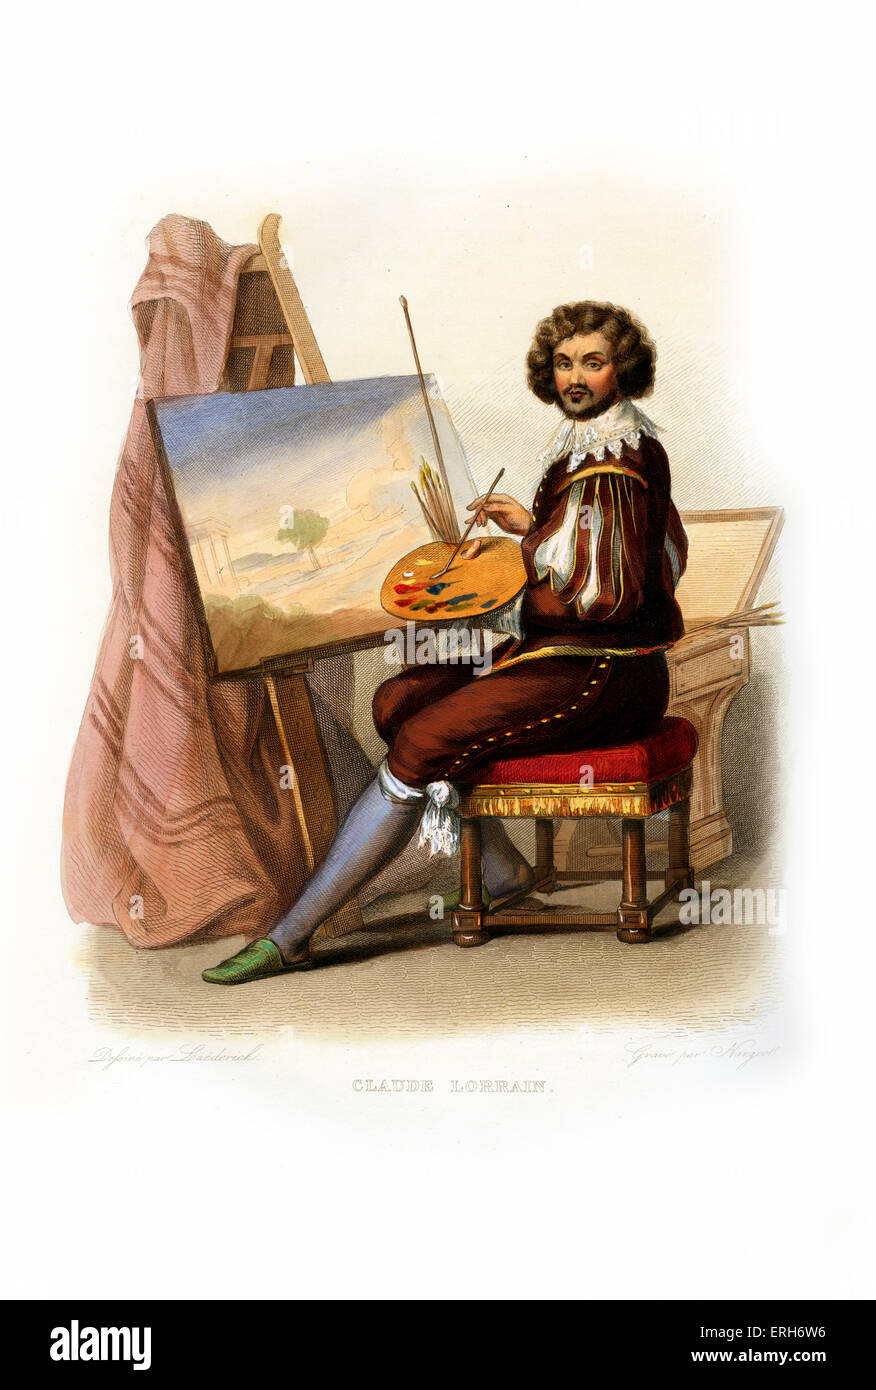 Claude Lorrain (Claude Gellée by his real name). French Baroque artist, specialised in landscape painting; - Stock Image